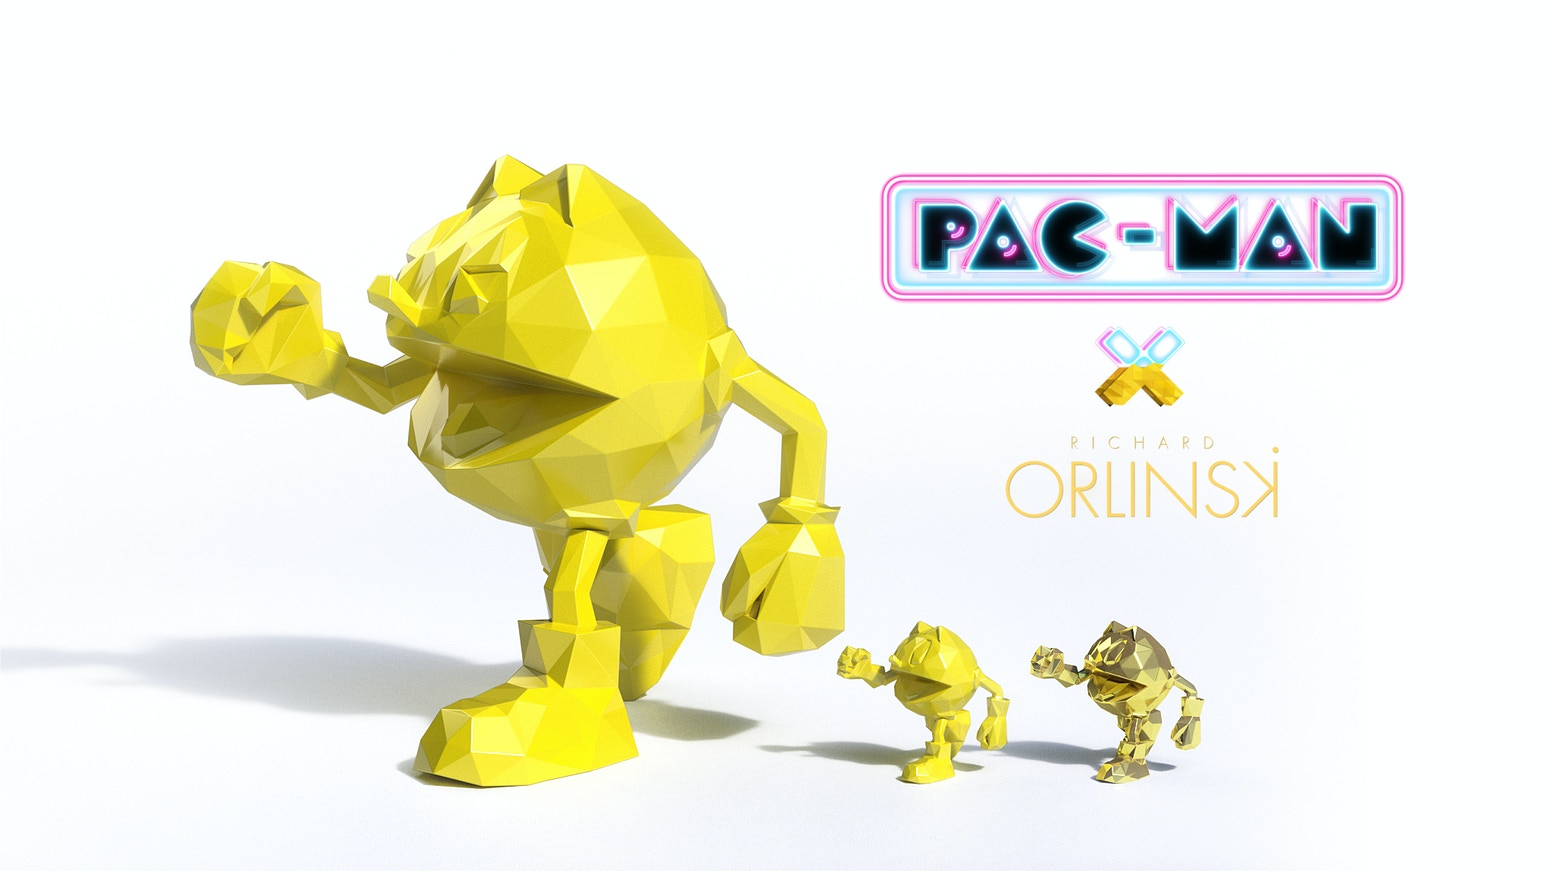 Official PAC-MAN sculptures designed by renowned artist Richard Orlinski